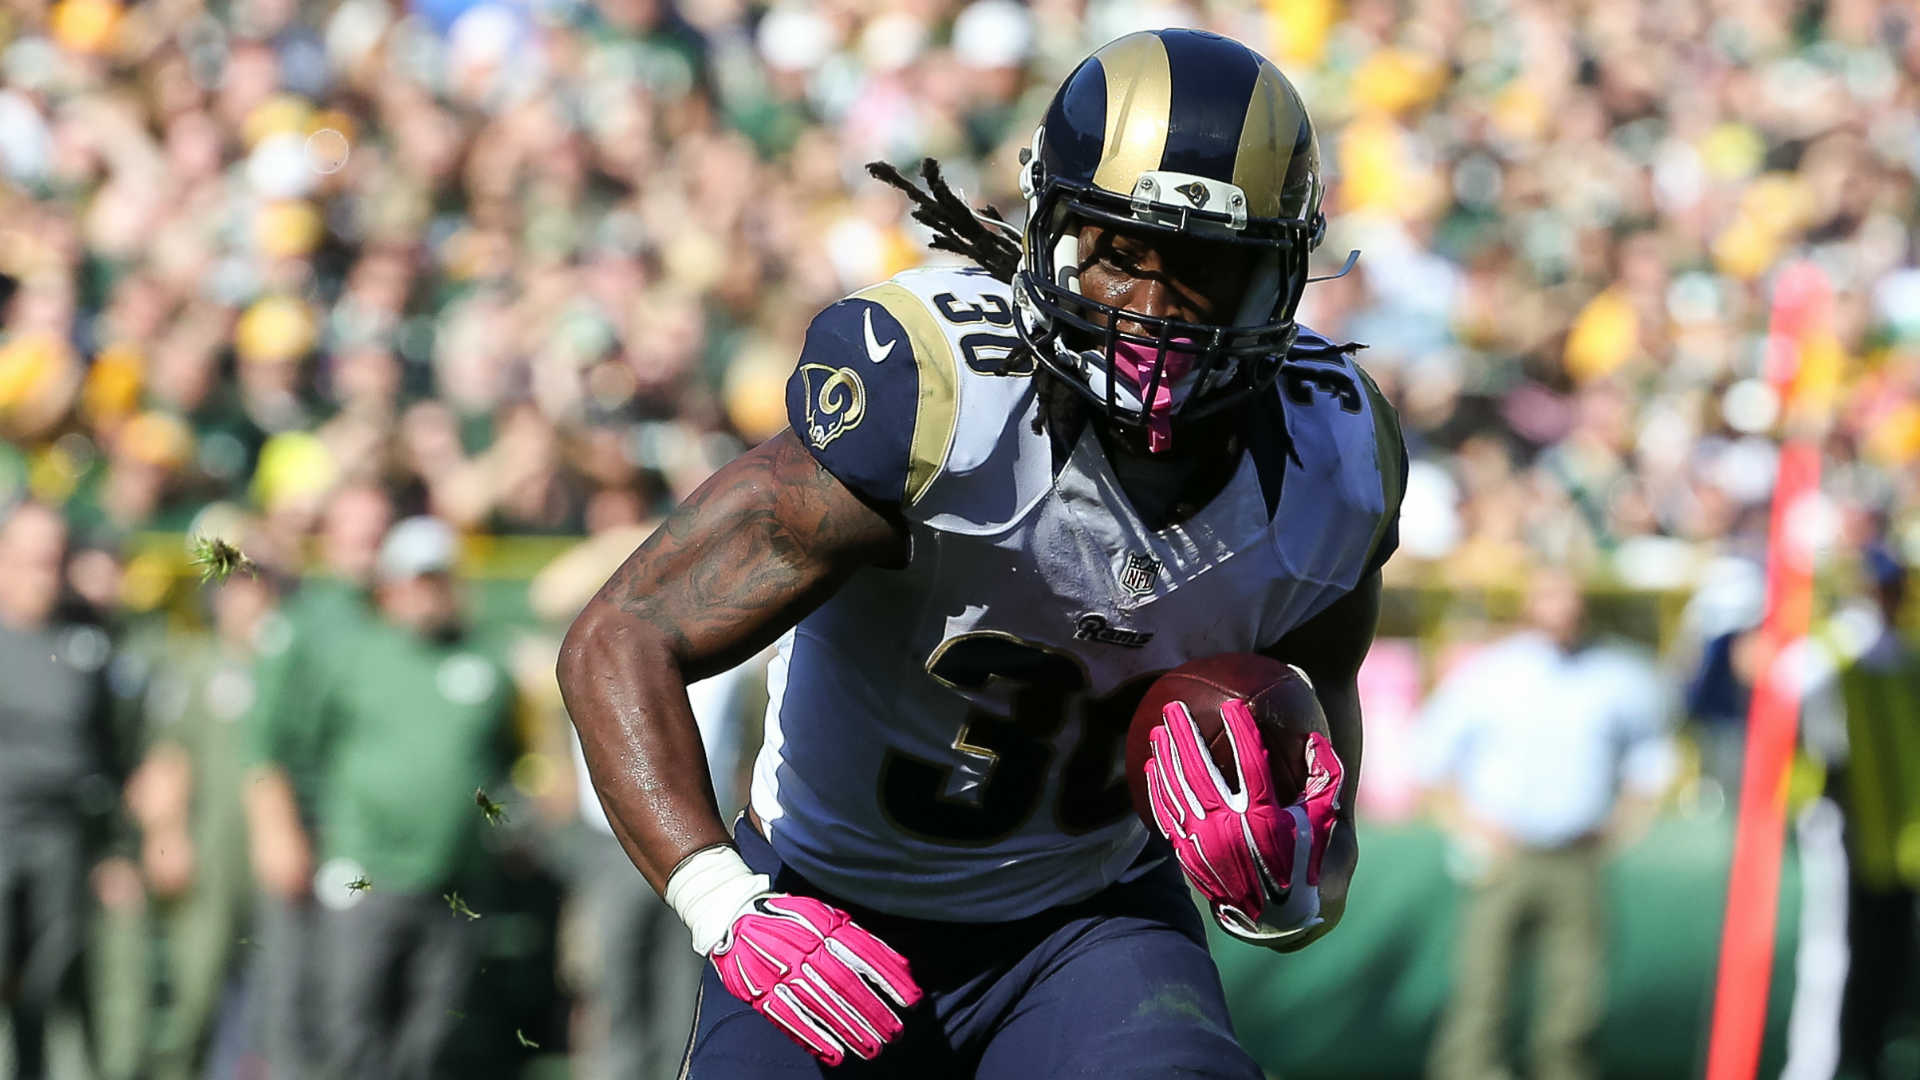 NFL rookie rankings Rams Todd Gurley sprints to top